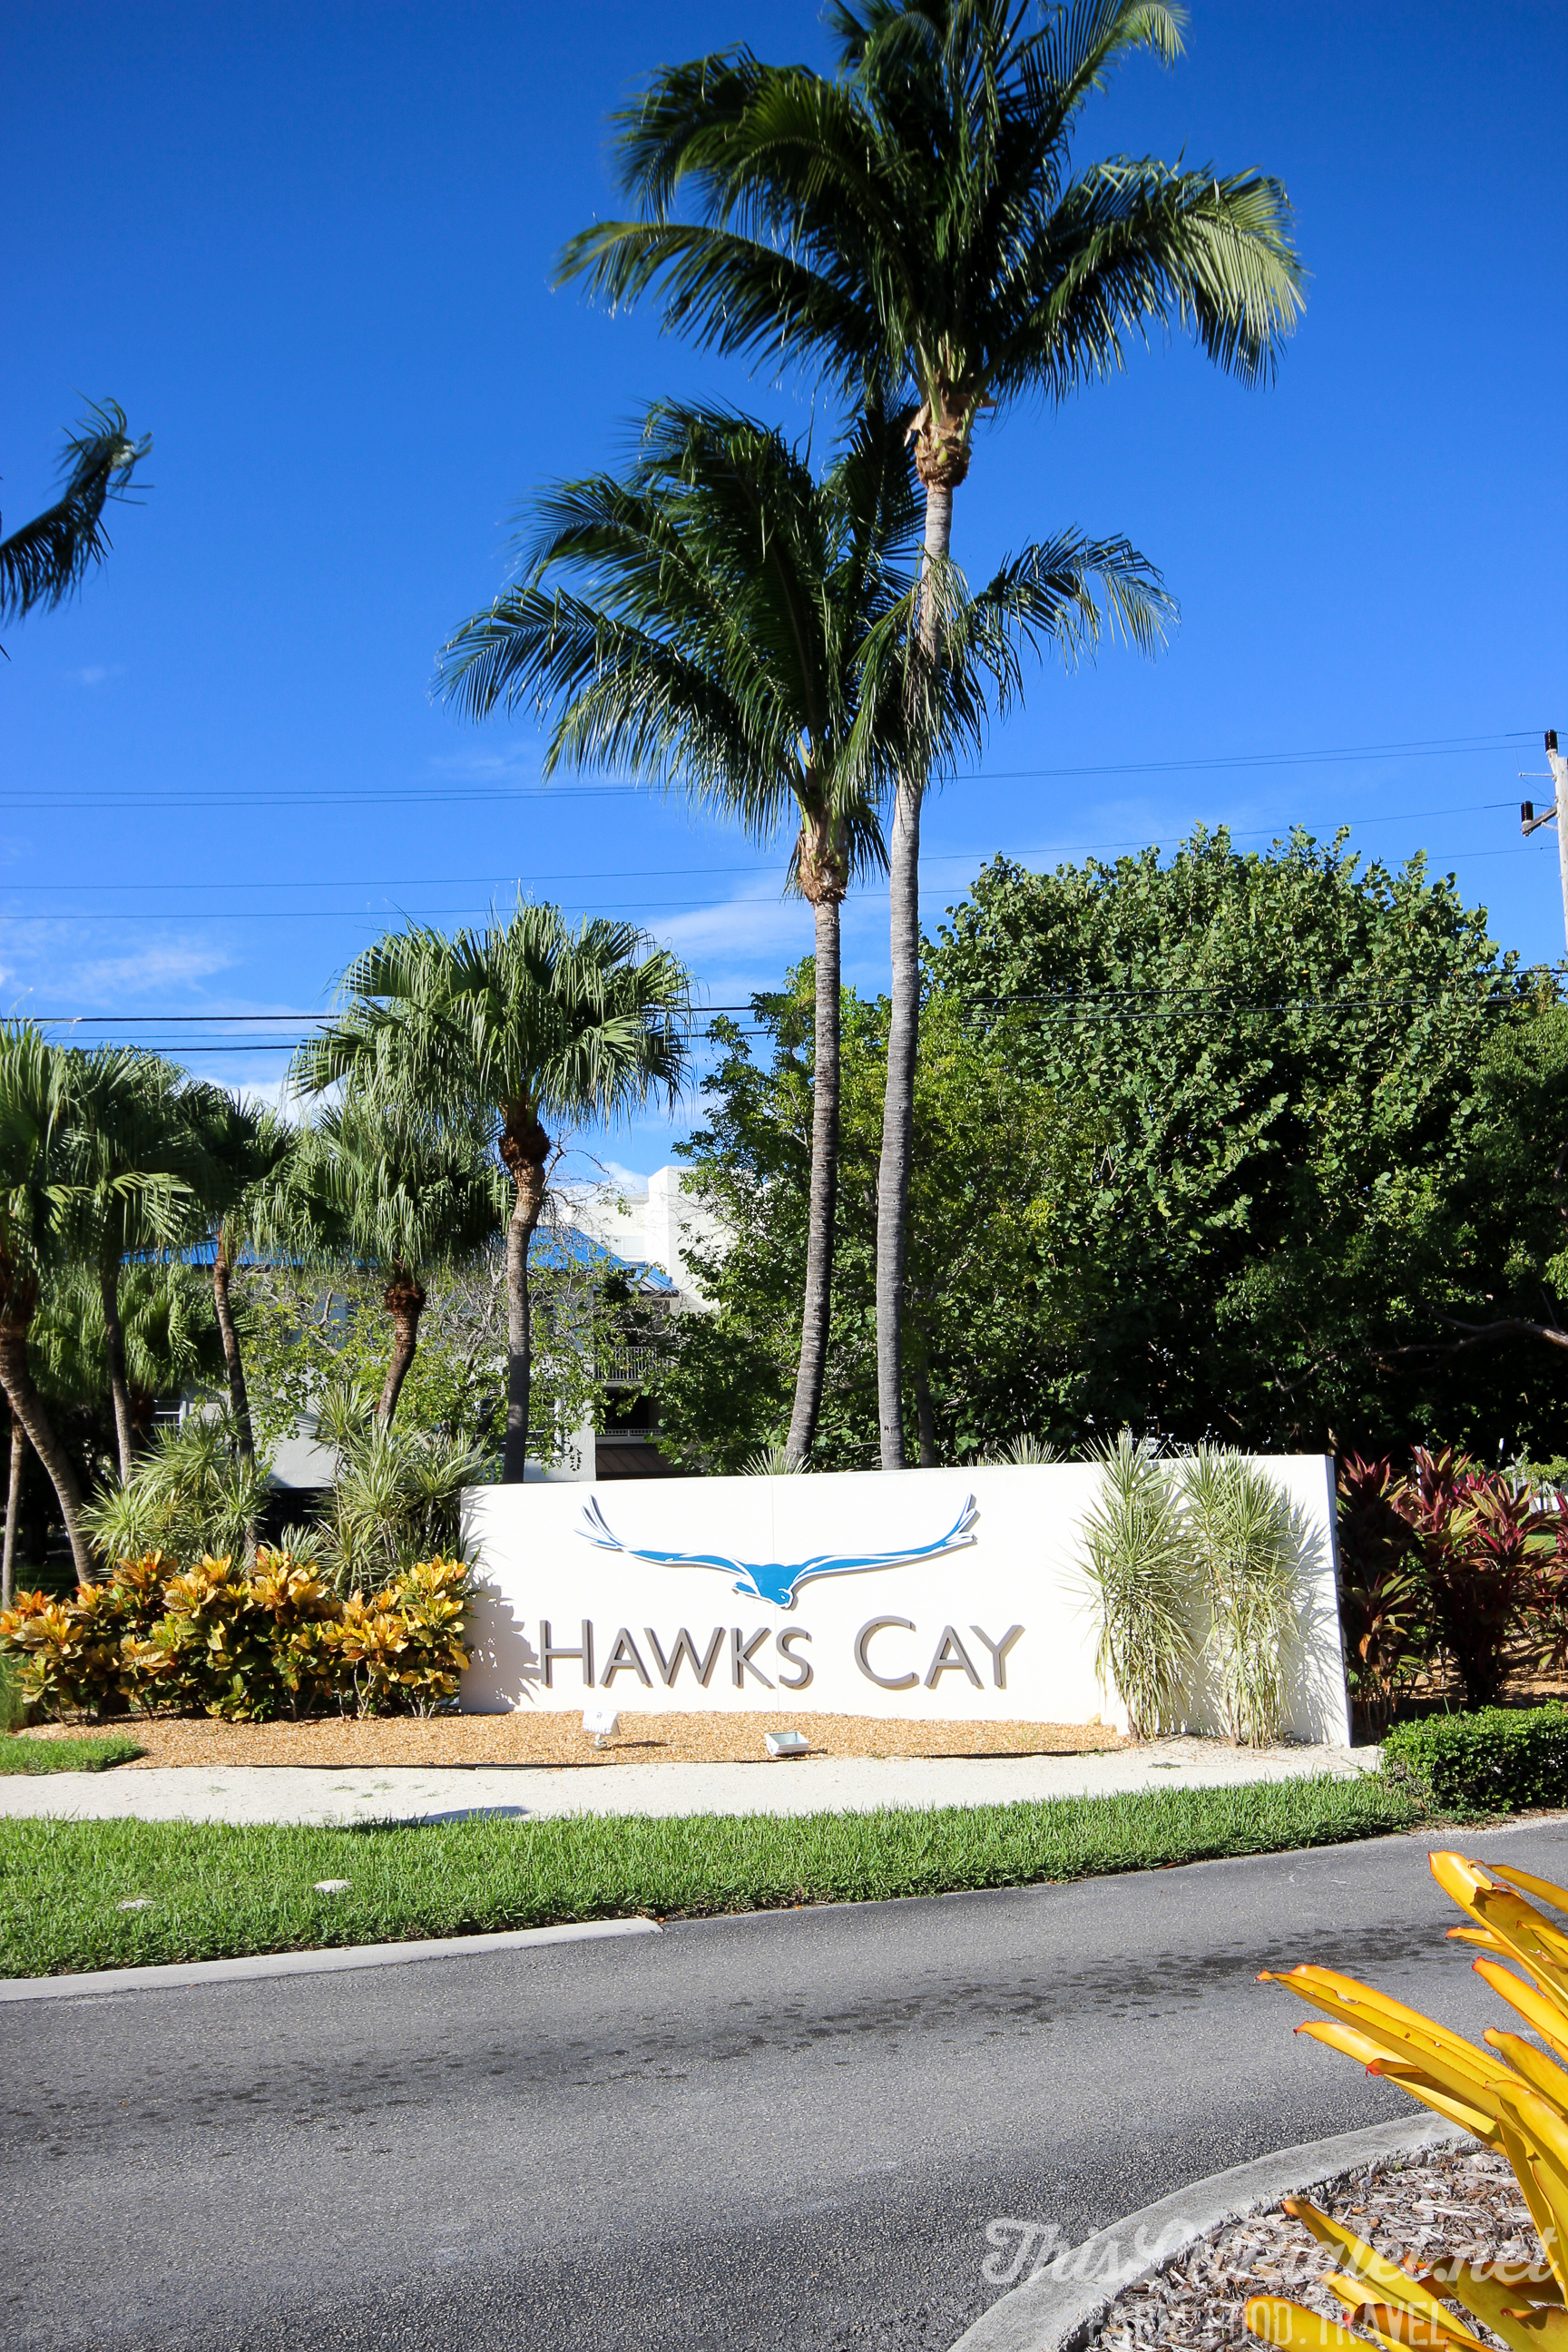 Luxury Family Travel at Hawks Cay Resort Entrance in the Florida Keys // thislilpiglet.net